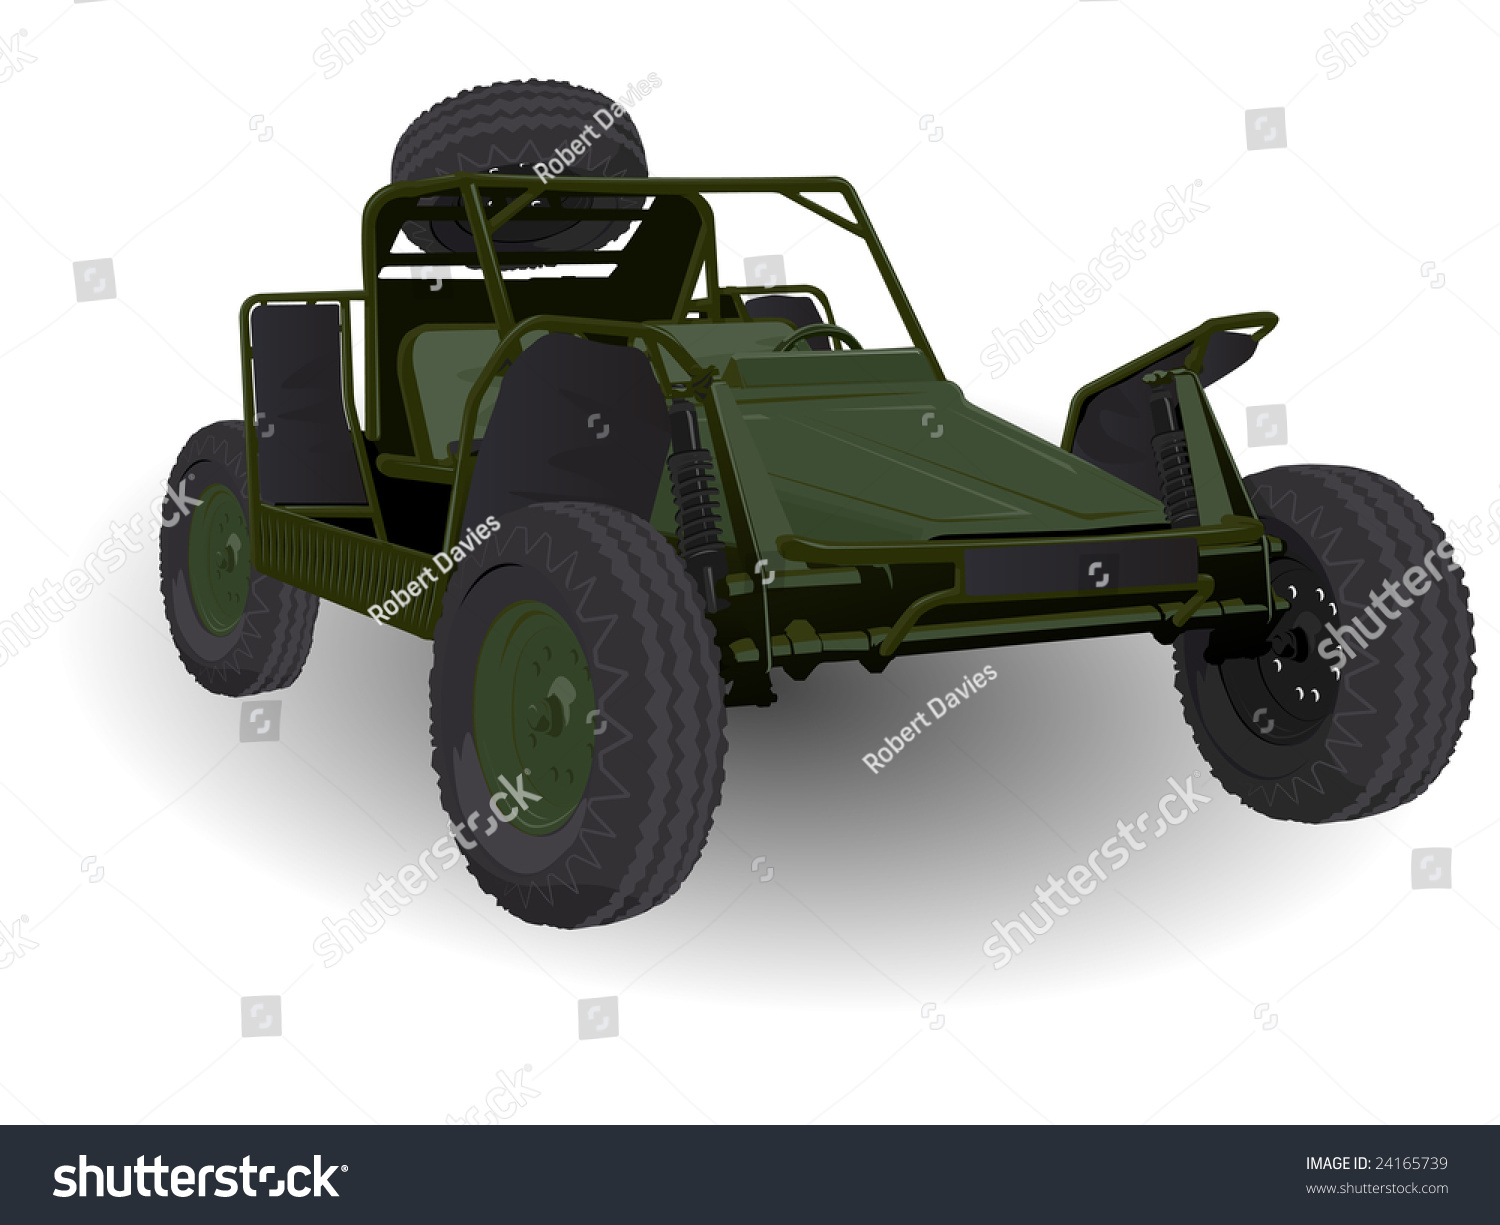 Army Dune Buggy Go-Cart Vehicle On White Stock Vector Illustration 24165739 : Shutterstock